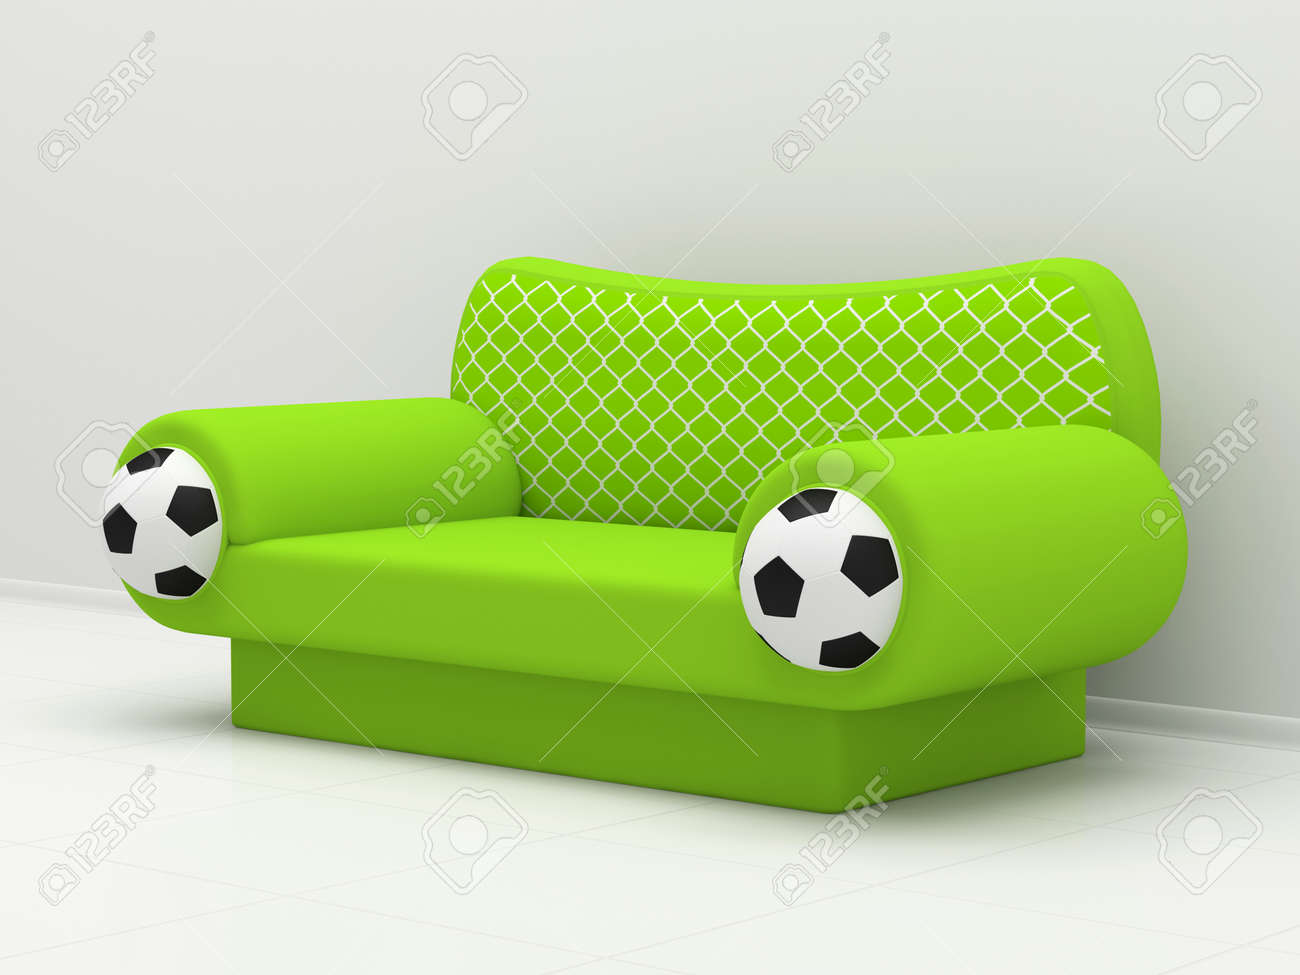 Green sofa with soccer balls and a grid Stock Photo - 12446300